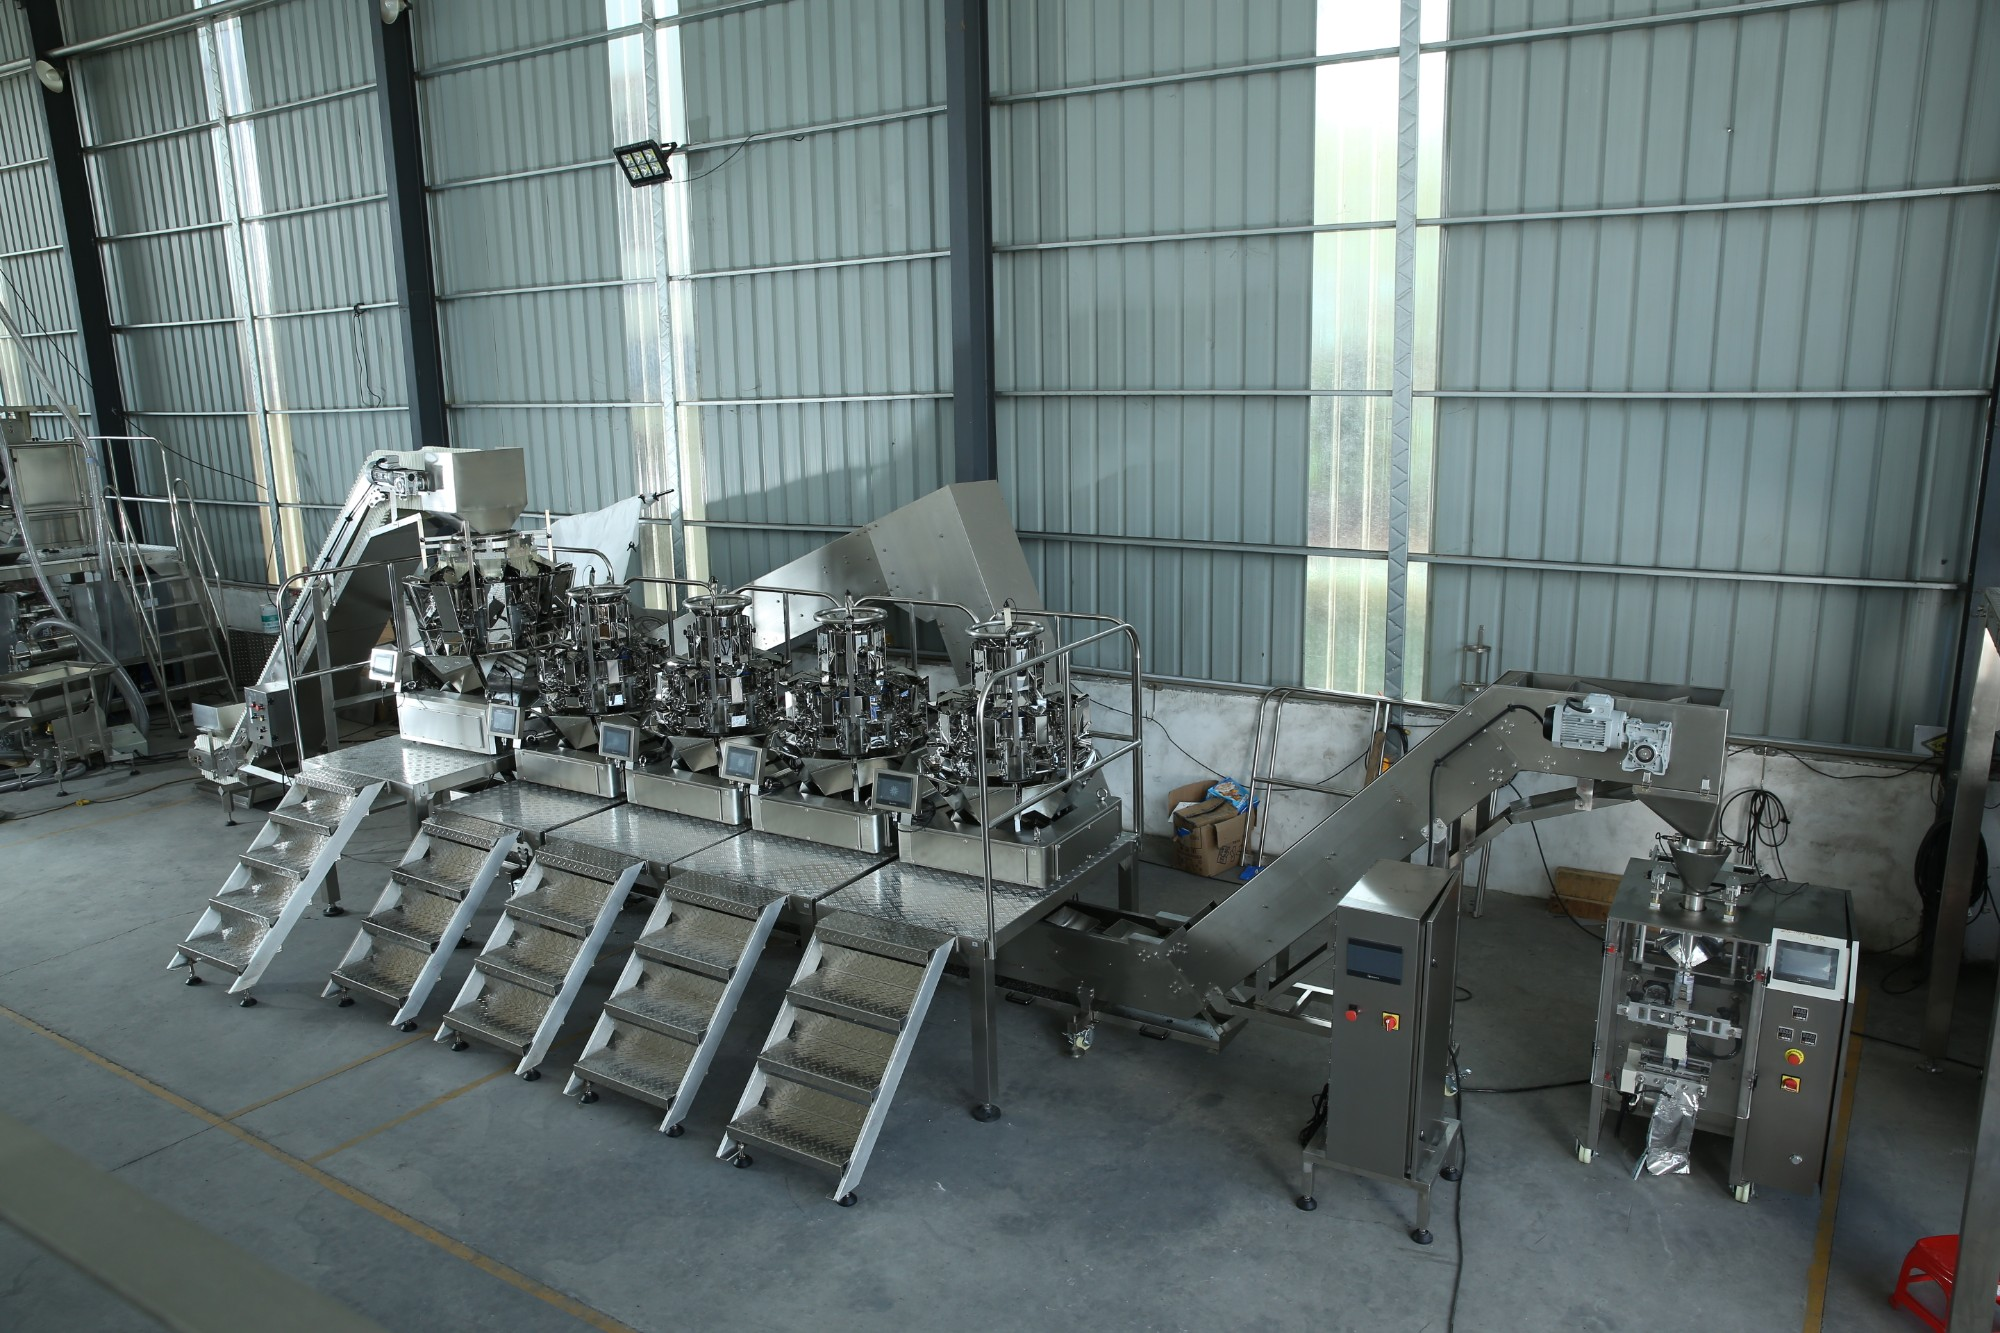 Baopack VD32 packing machine with different liters weigher to package spices Manufacturers, Baopack VD32 packing machine with different liters weigher to package spices Factory, Supply Baopack VD32 packing machine with different liters weigher to package spices